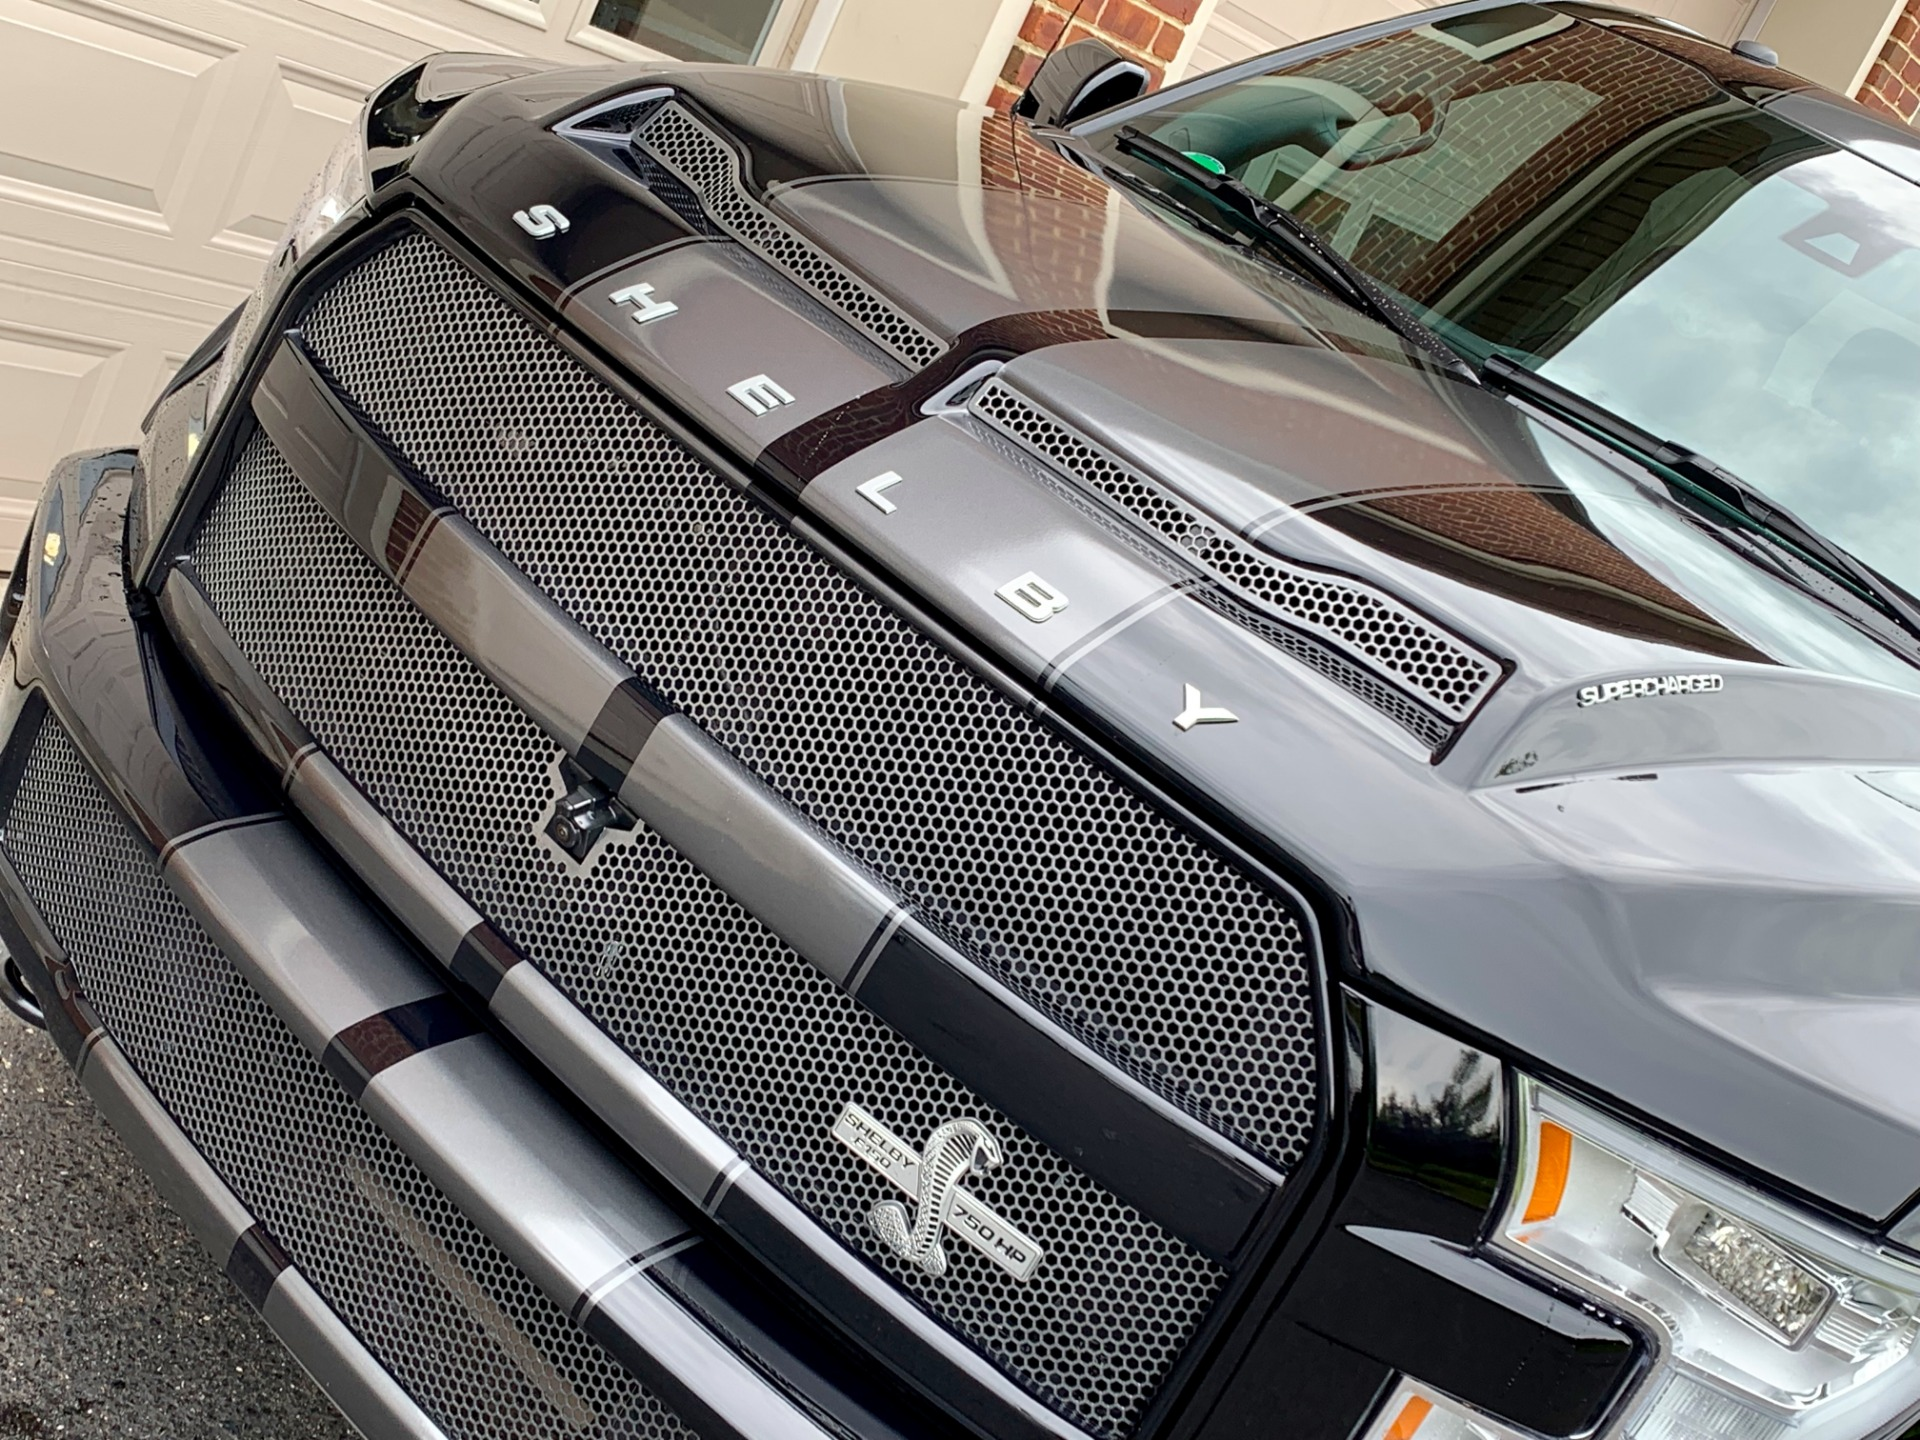 Used-2017-Ford-F-150-Lariat-SHELBY-Supercharged-750HP